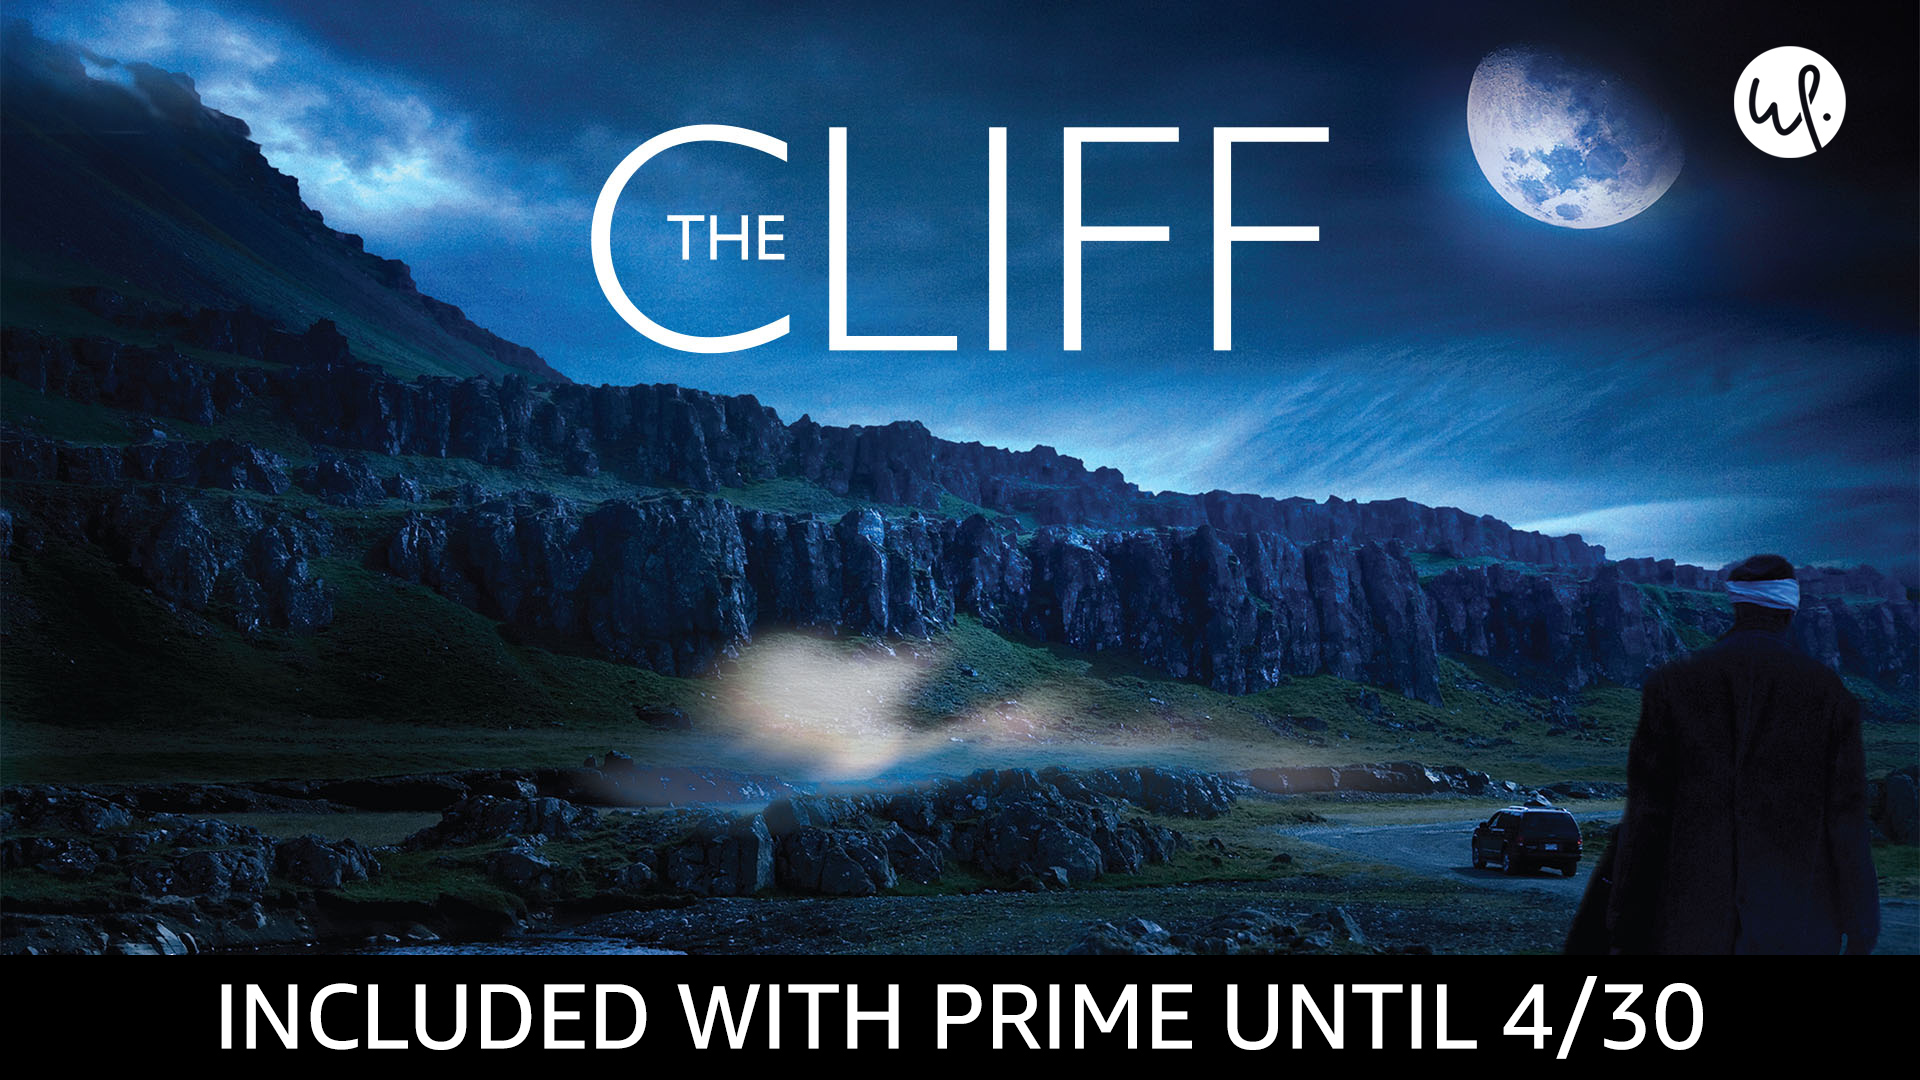 The Cliff: Season 1